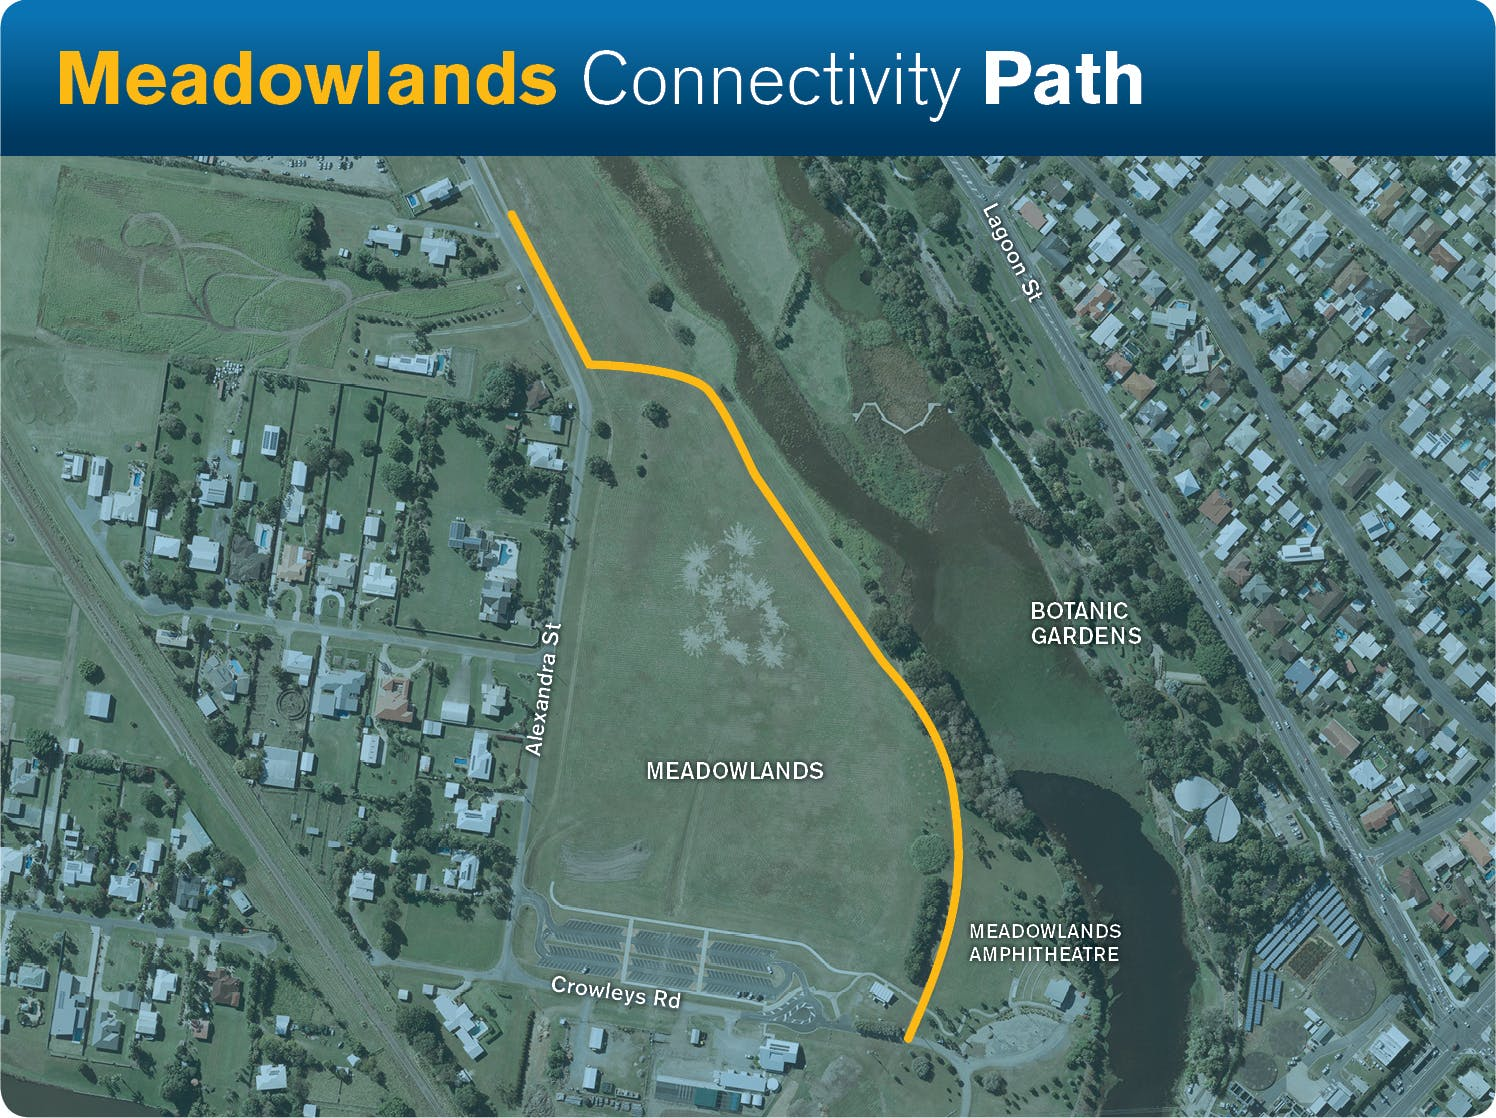 Facebook imagery Meadowlands Connectivity Pathway.jpg